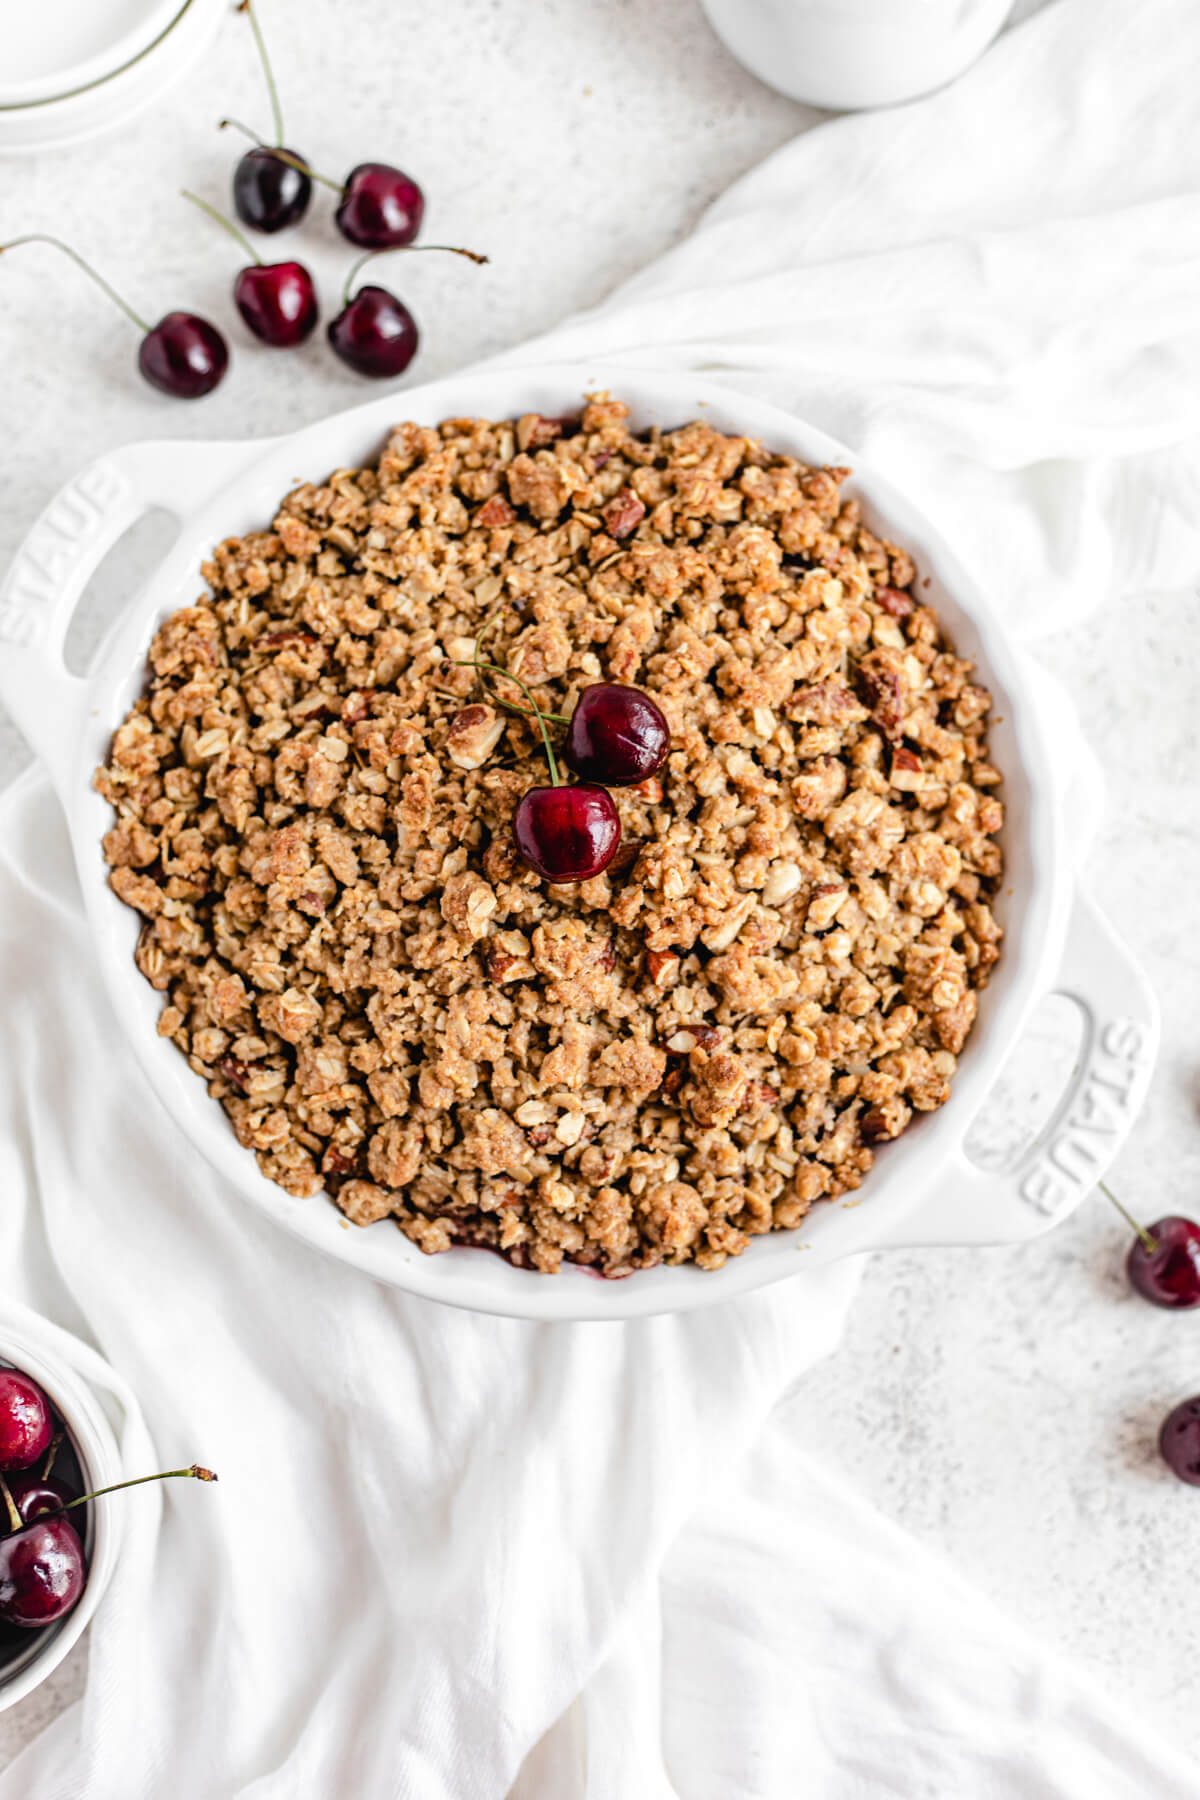 Crisp topped with fresh cherries